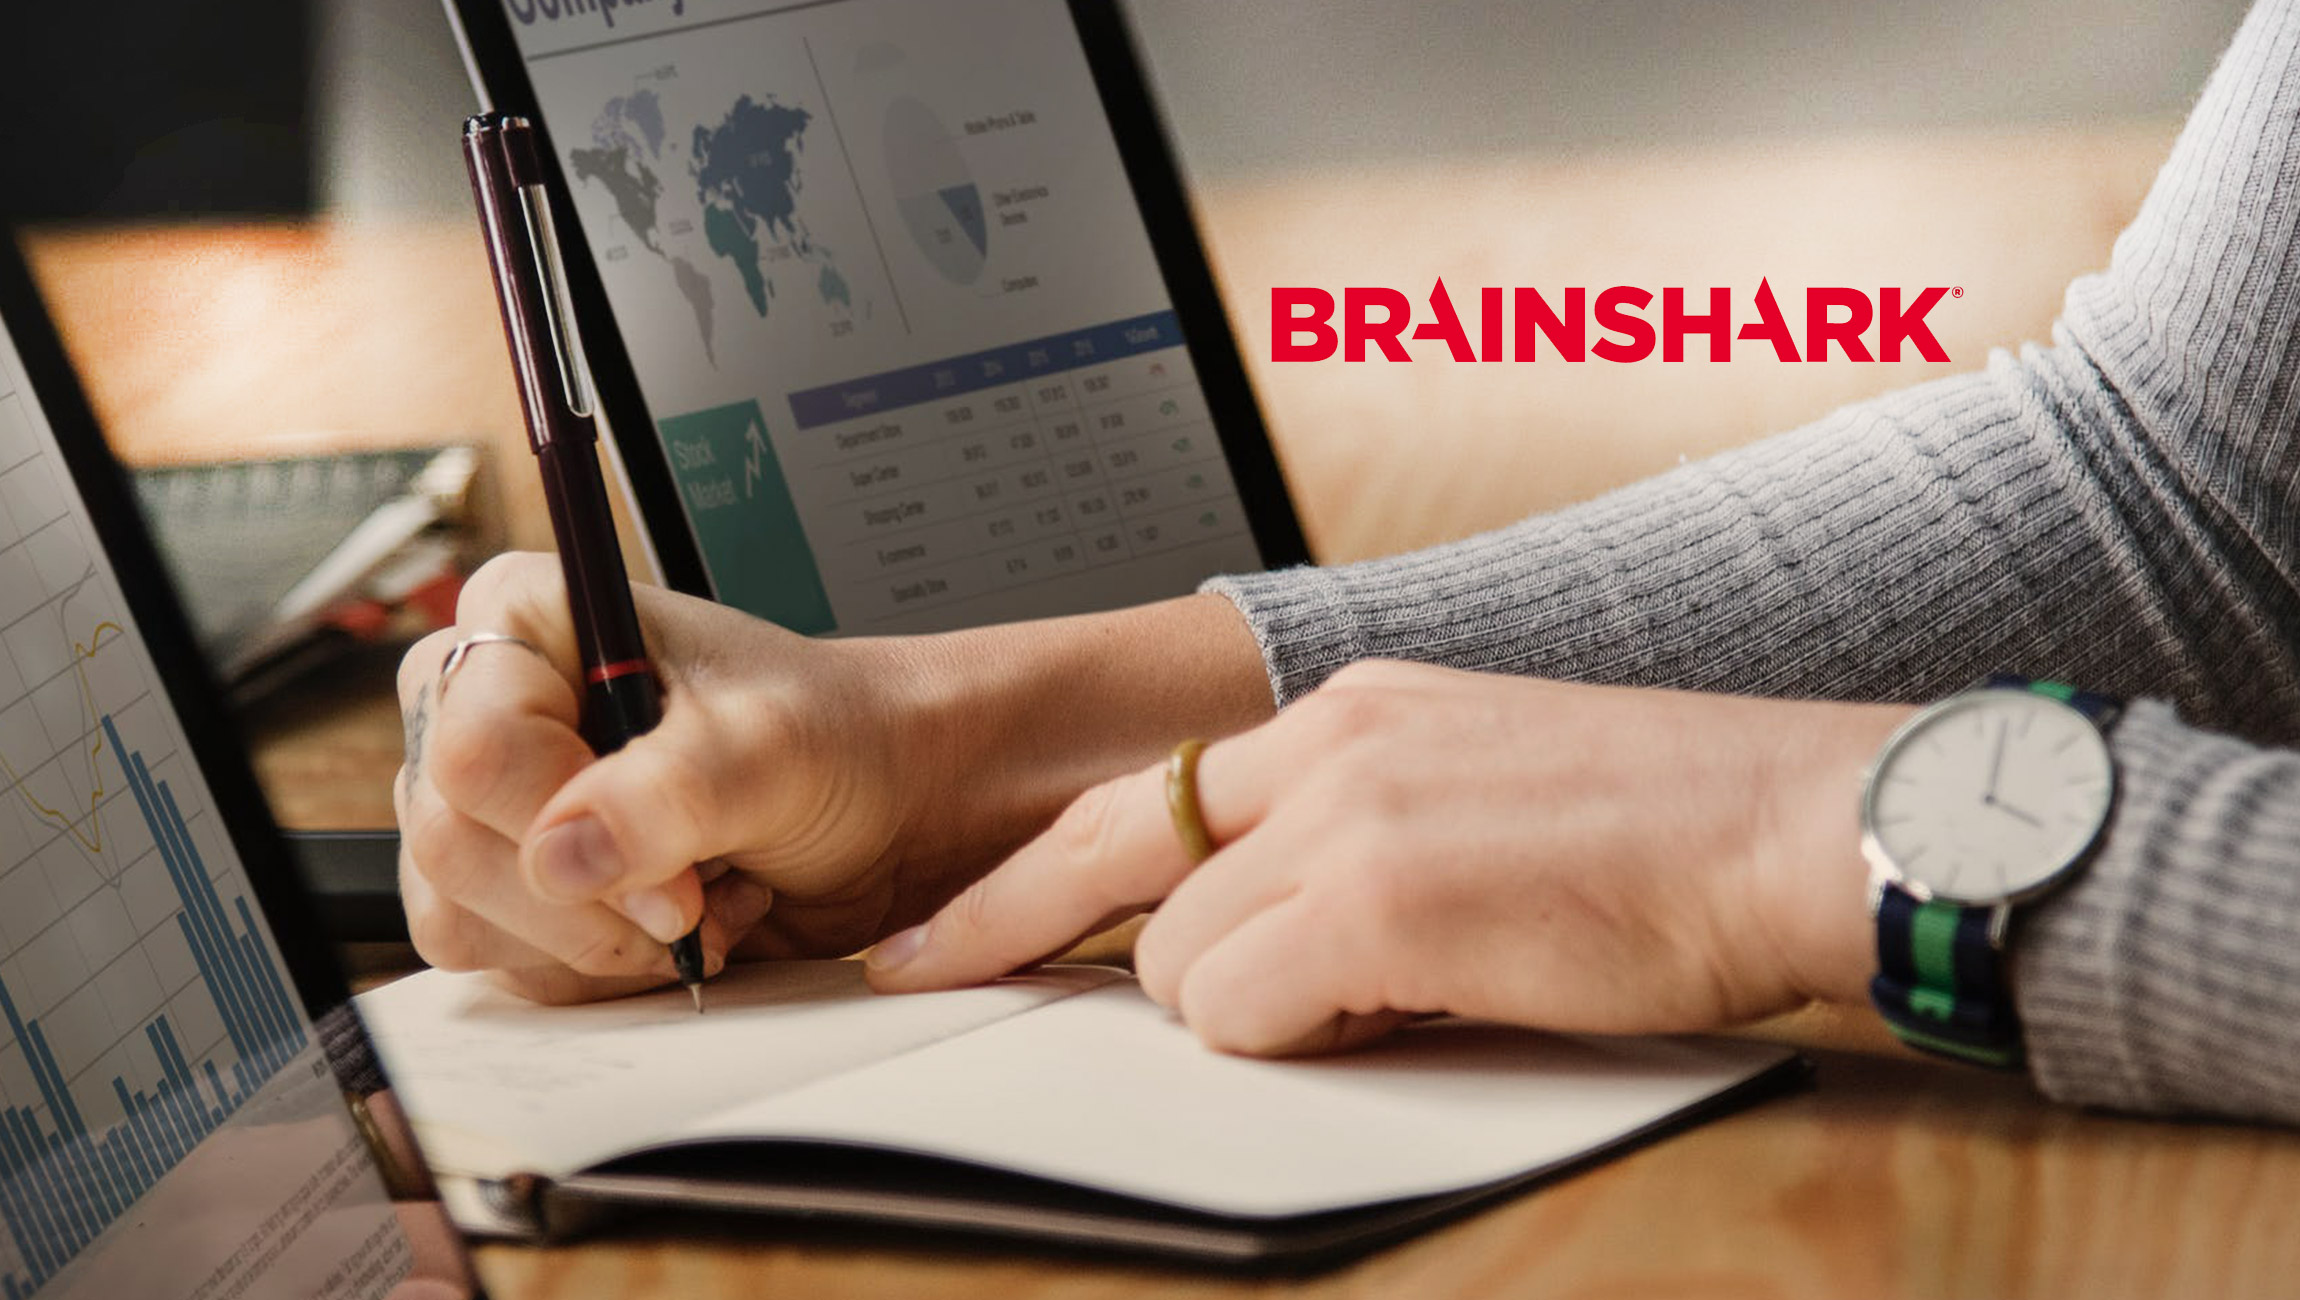 Brainshark Acquires Rekener to Deliver Industry's Only Data-Driven Sales Readiness Platform